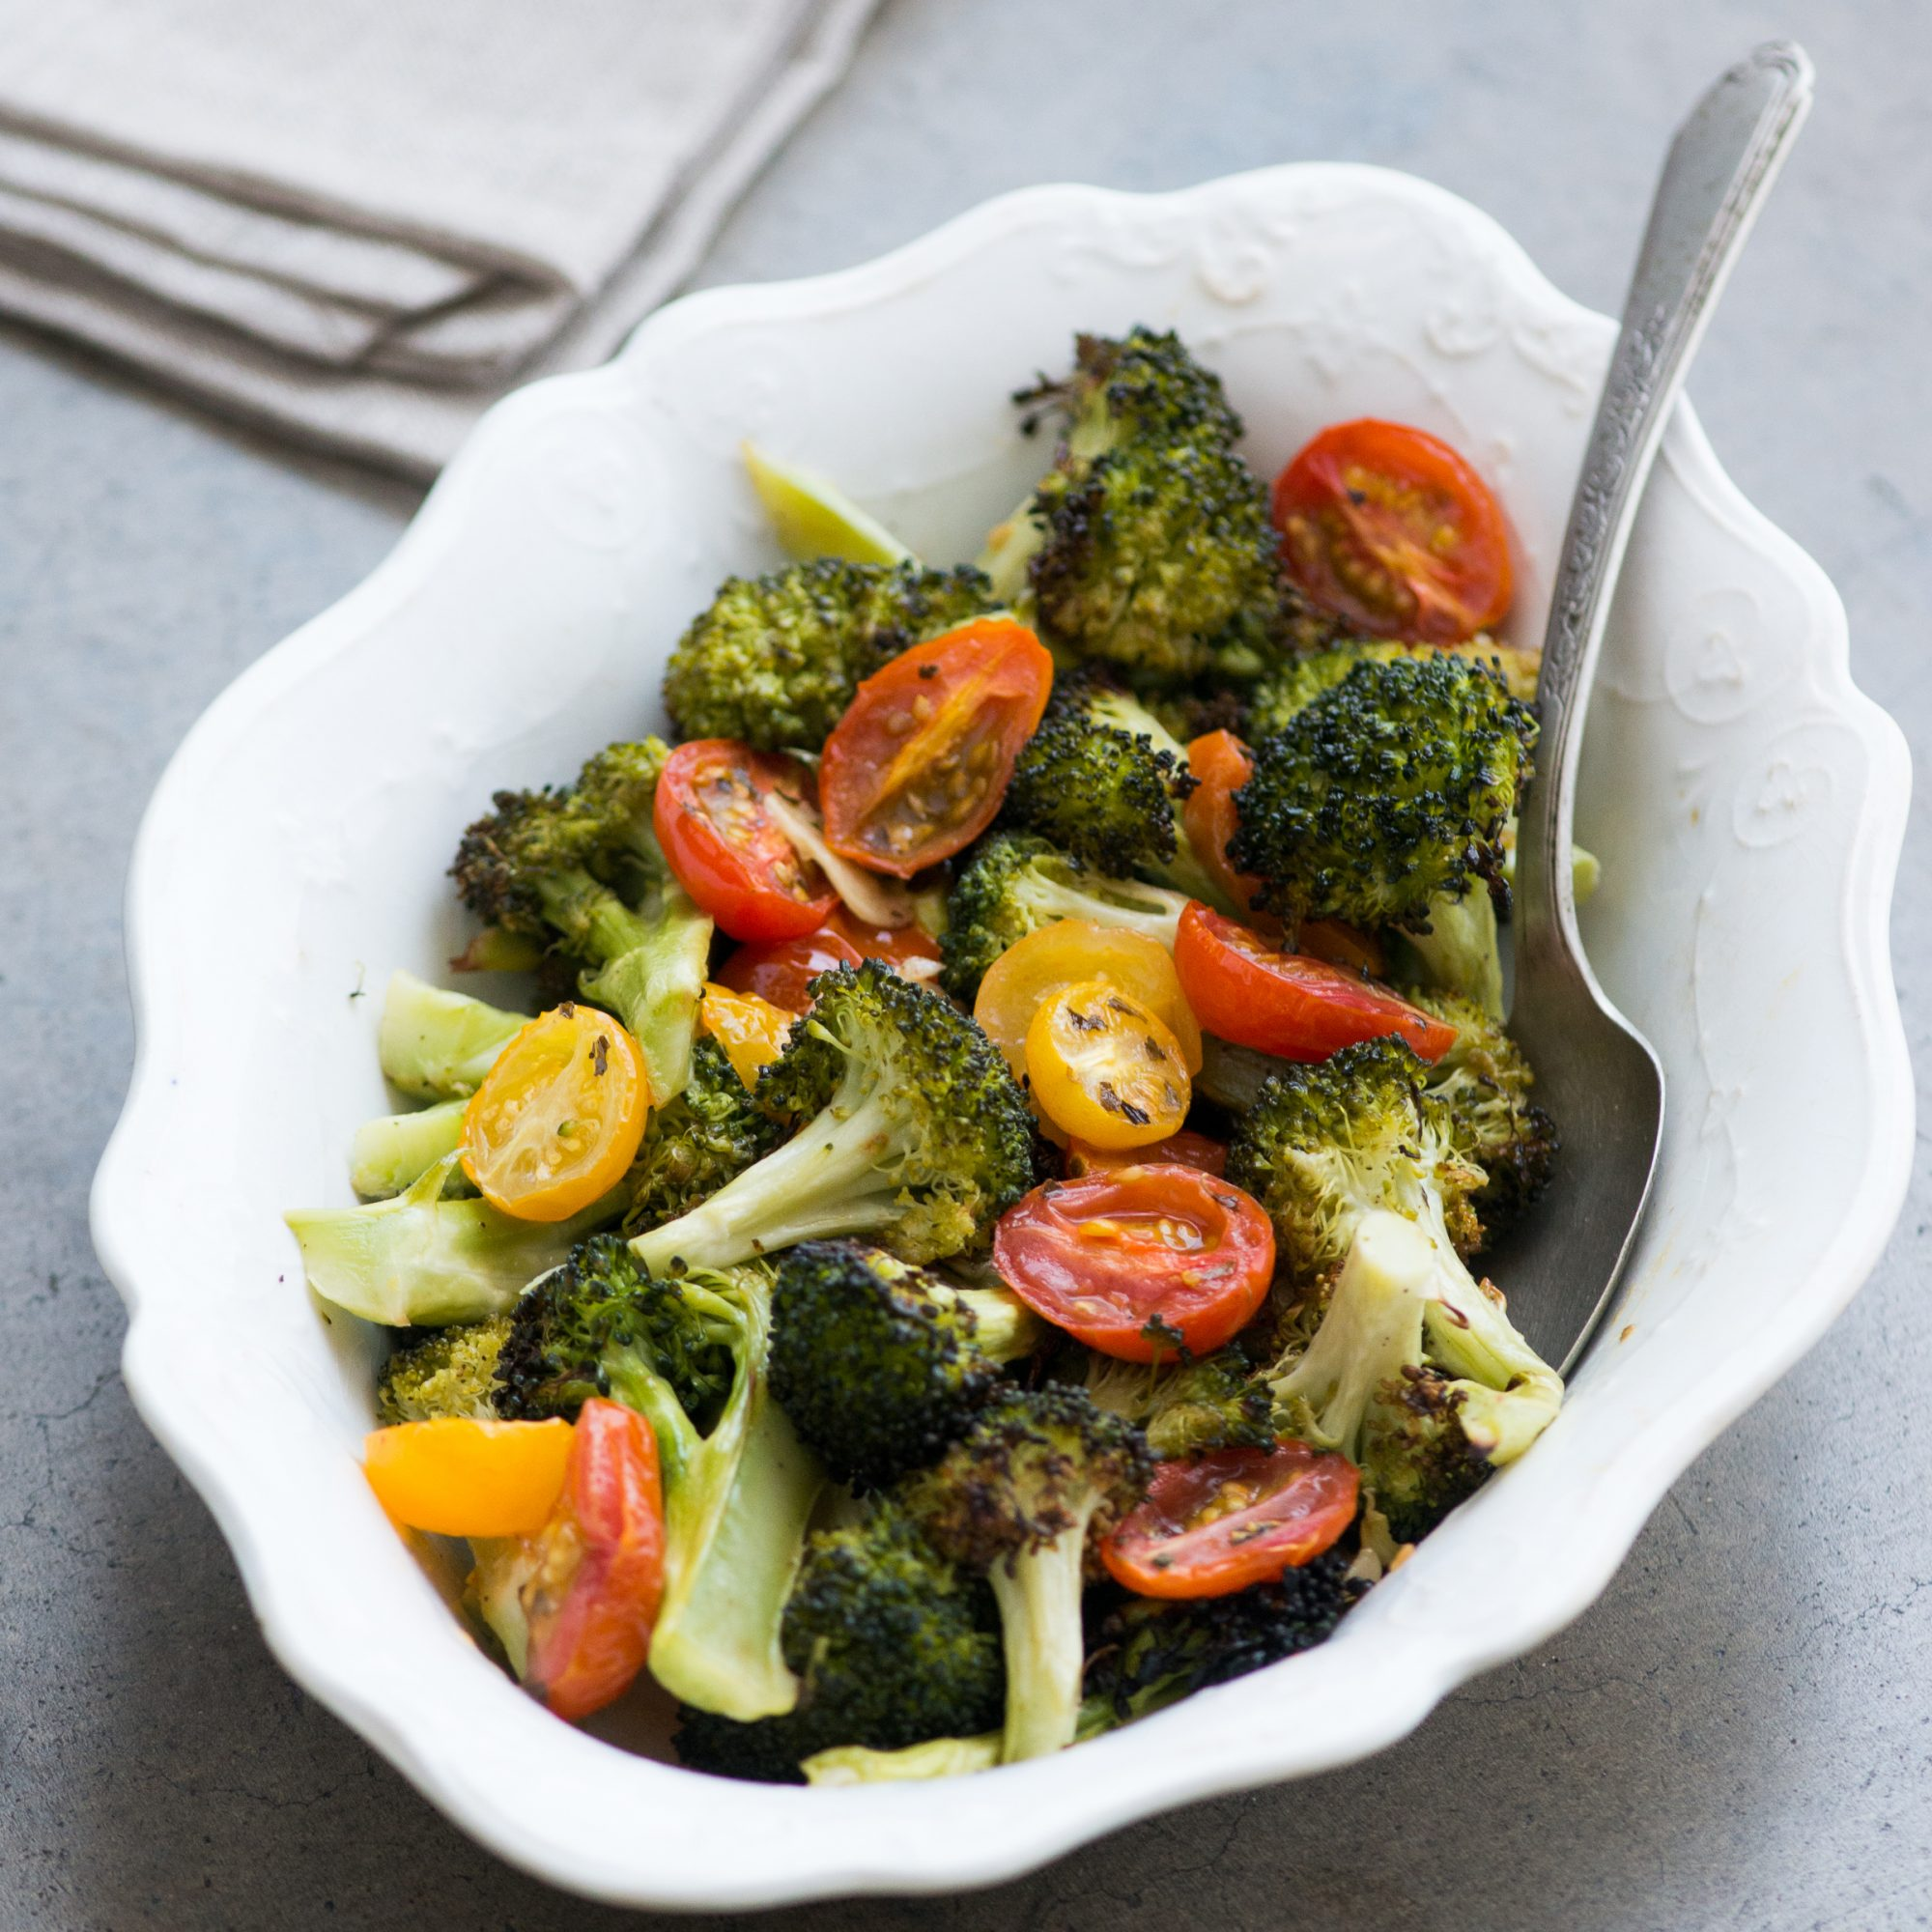 Roasted Broccoli and Cherry Tomatoes with Garlic